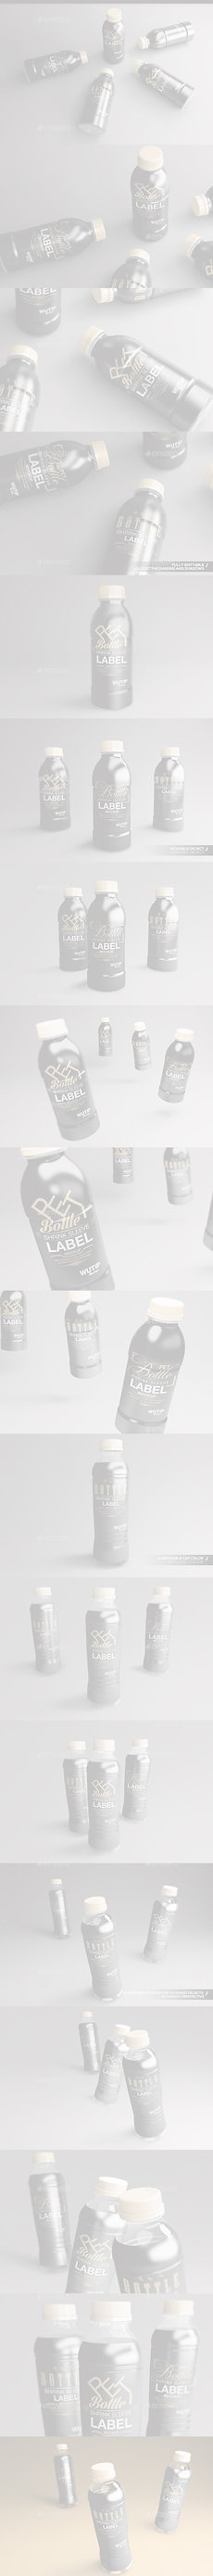 Tamper Proof Shrink sleeve labeling